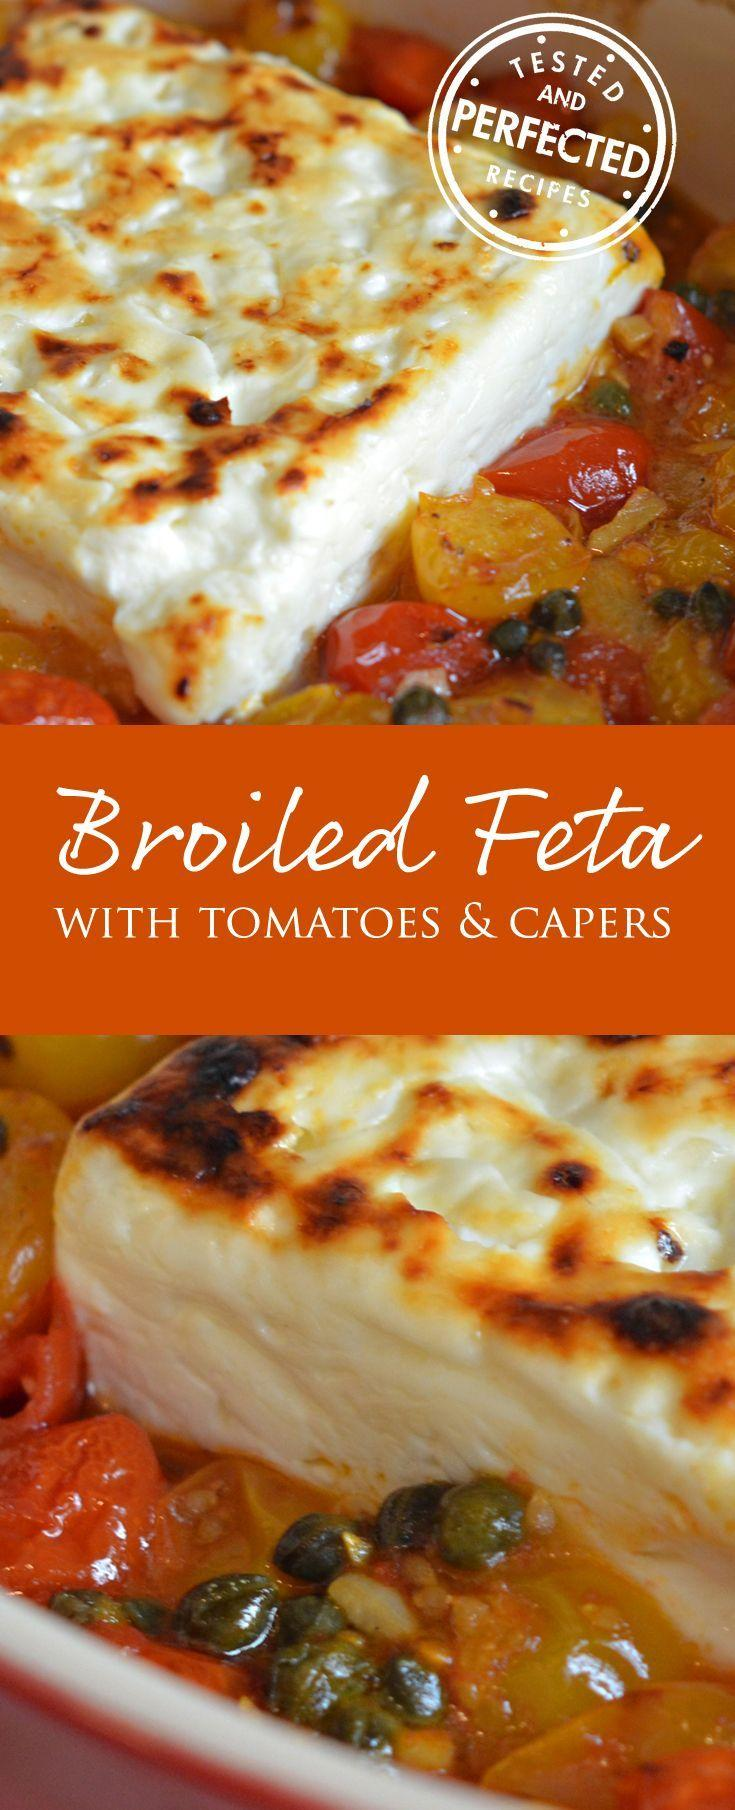 Boda - Broiled Feta With Garlicky Cherry Tomatoes & Capers